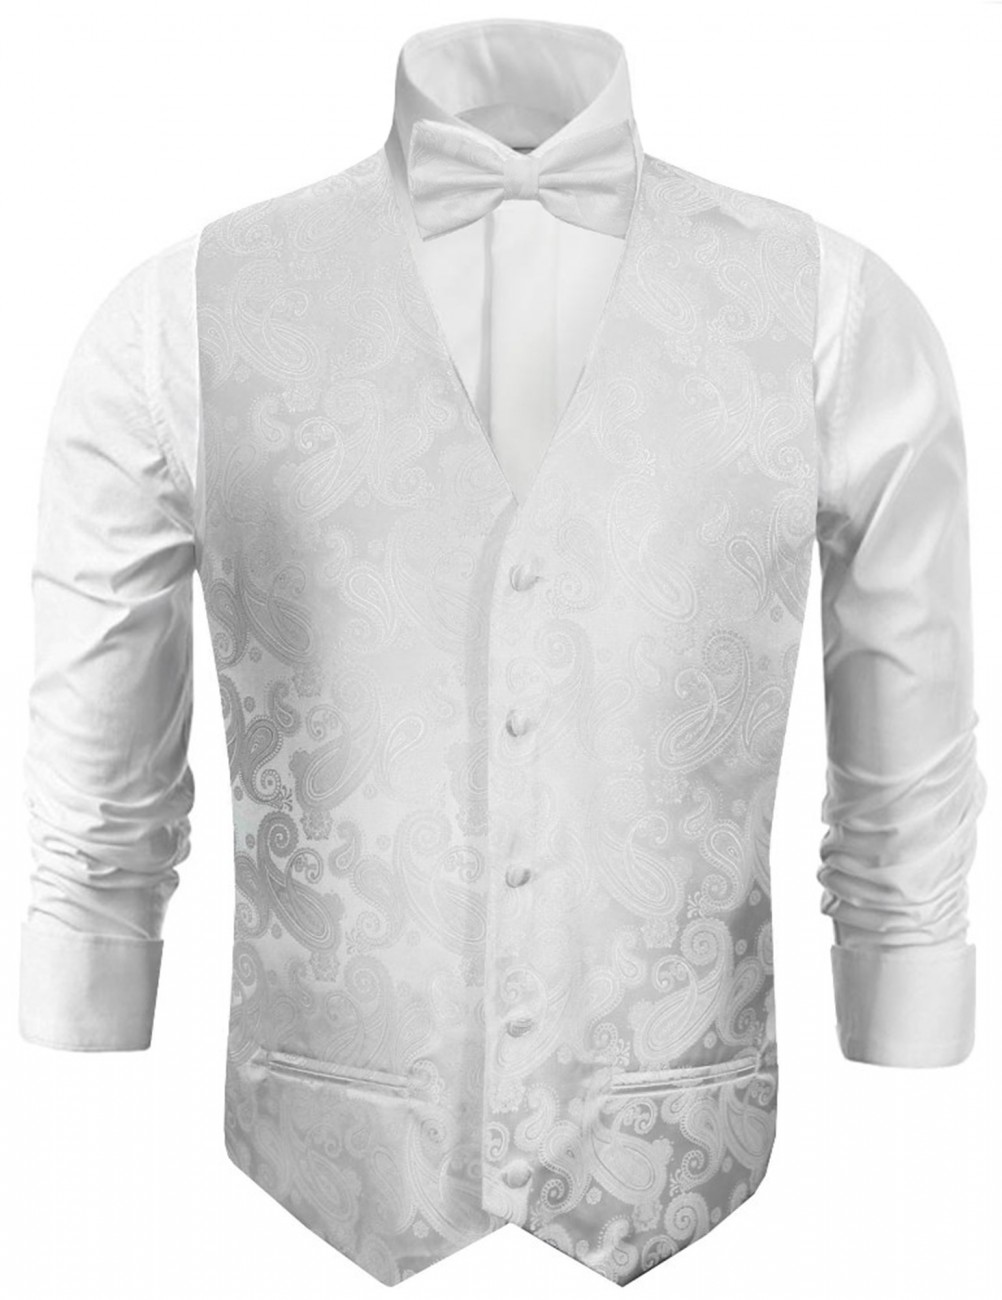 Wedding vest with bow tie uni white paisley